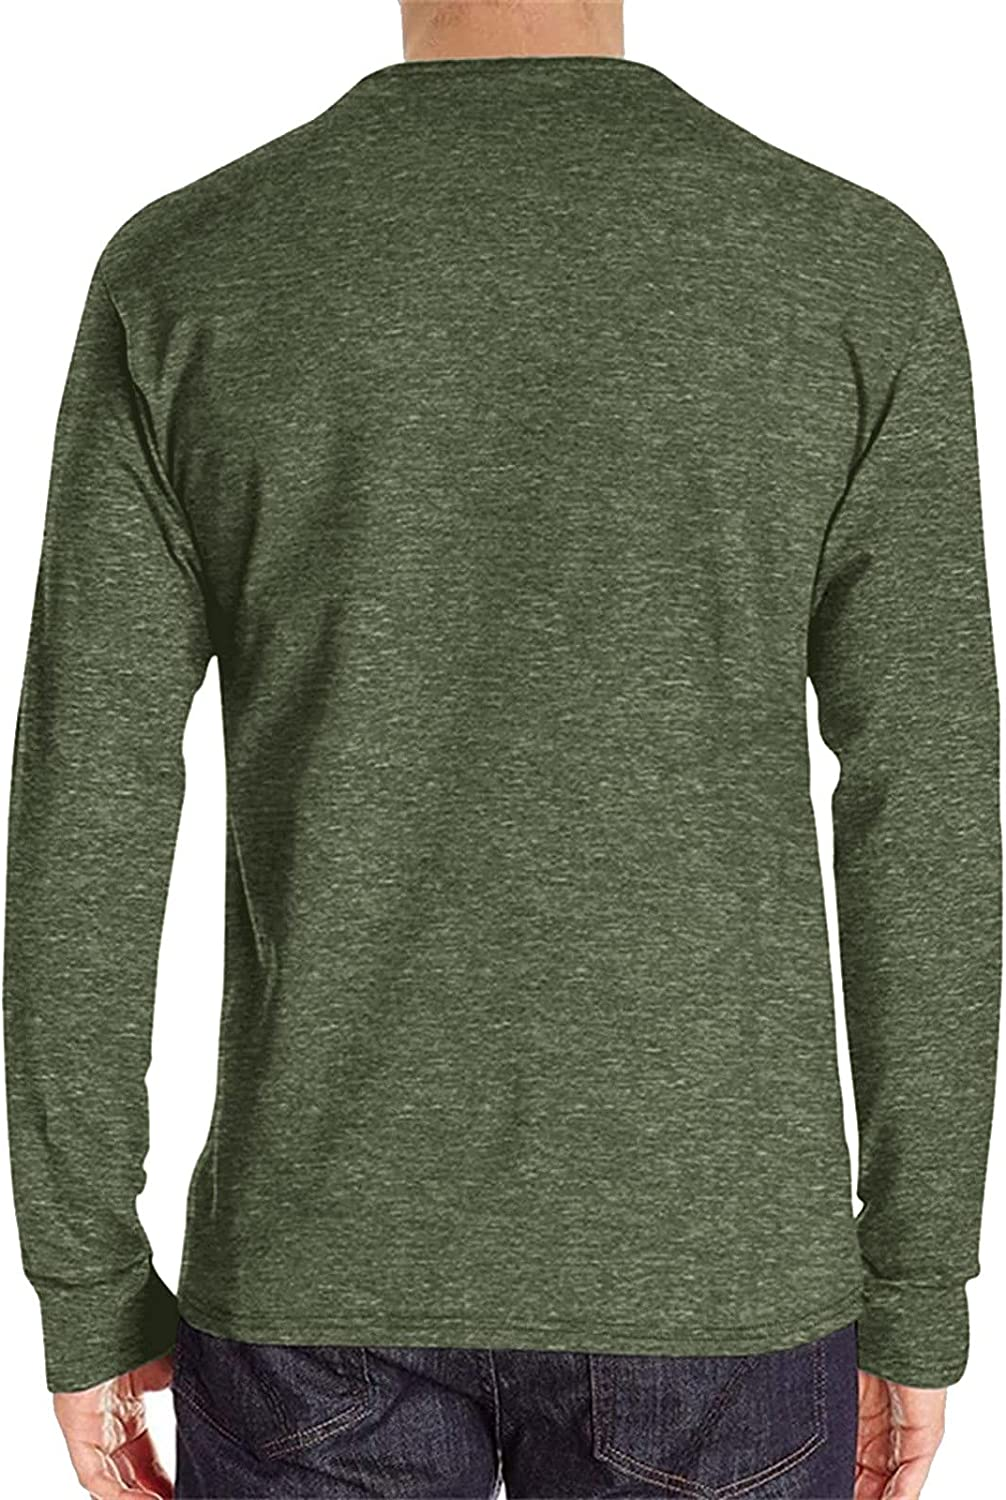 Tops for Men Multi-Button Solid Color excellence depot Sport Fashion Long-Sleeved